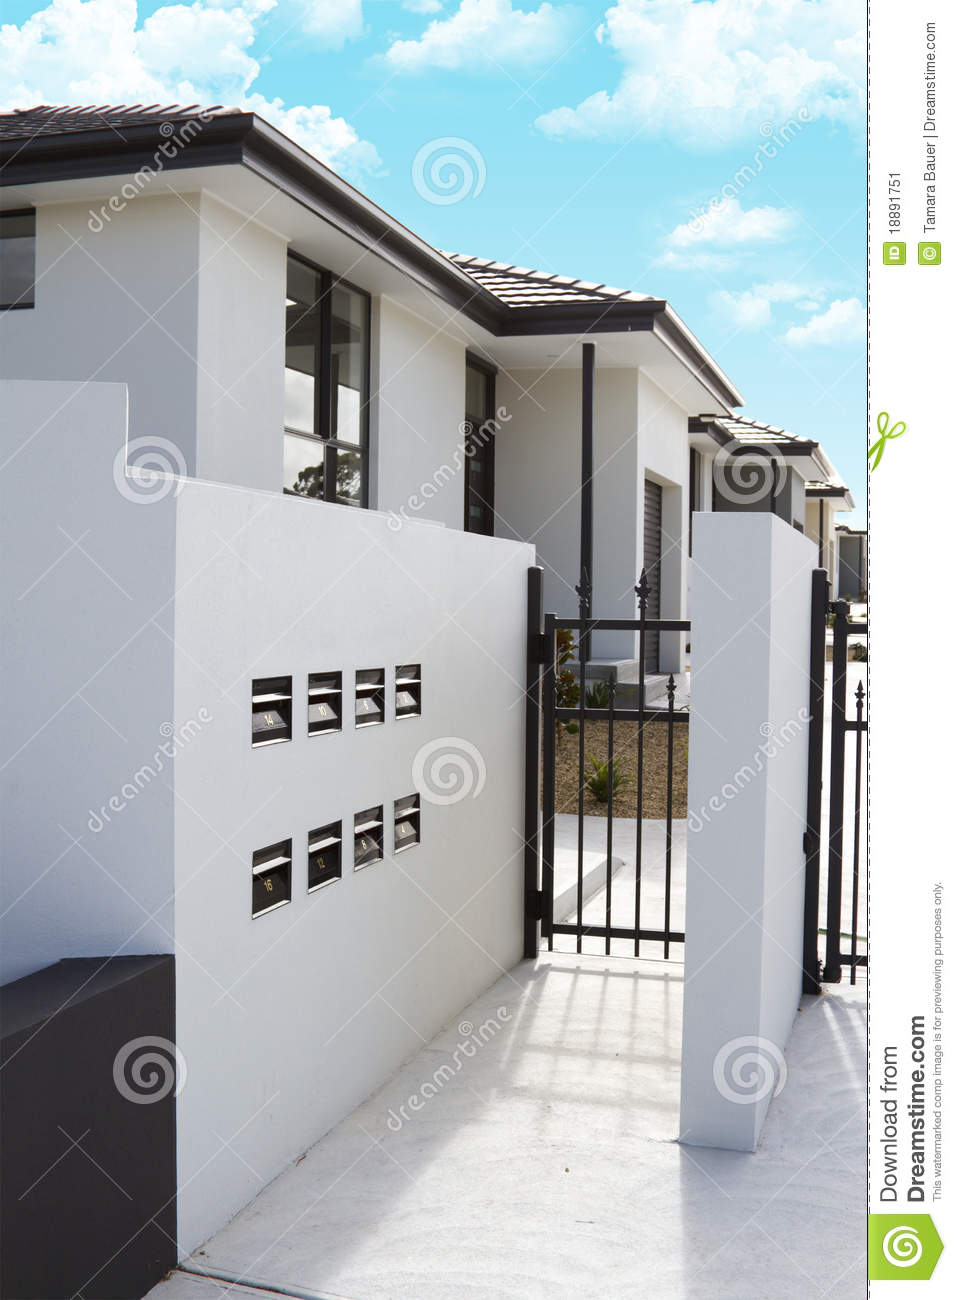 Airport Style House Plans moreover Case moreover Stock Image Modern Stucco Homes Image18891751 besides Stock Photo House Collage Image2580900 besides Stock Illustration Home Automation Icons Smart Smart House Control Systems Simplines Series Vector Image45866884. on apartment security design